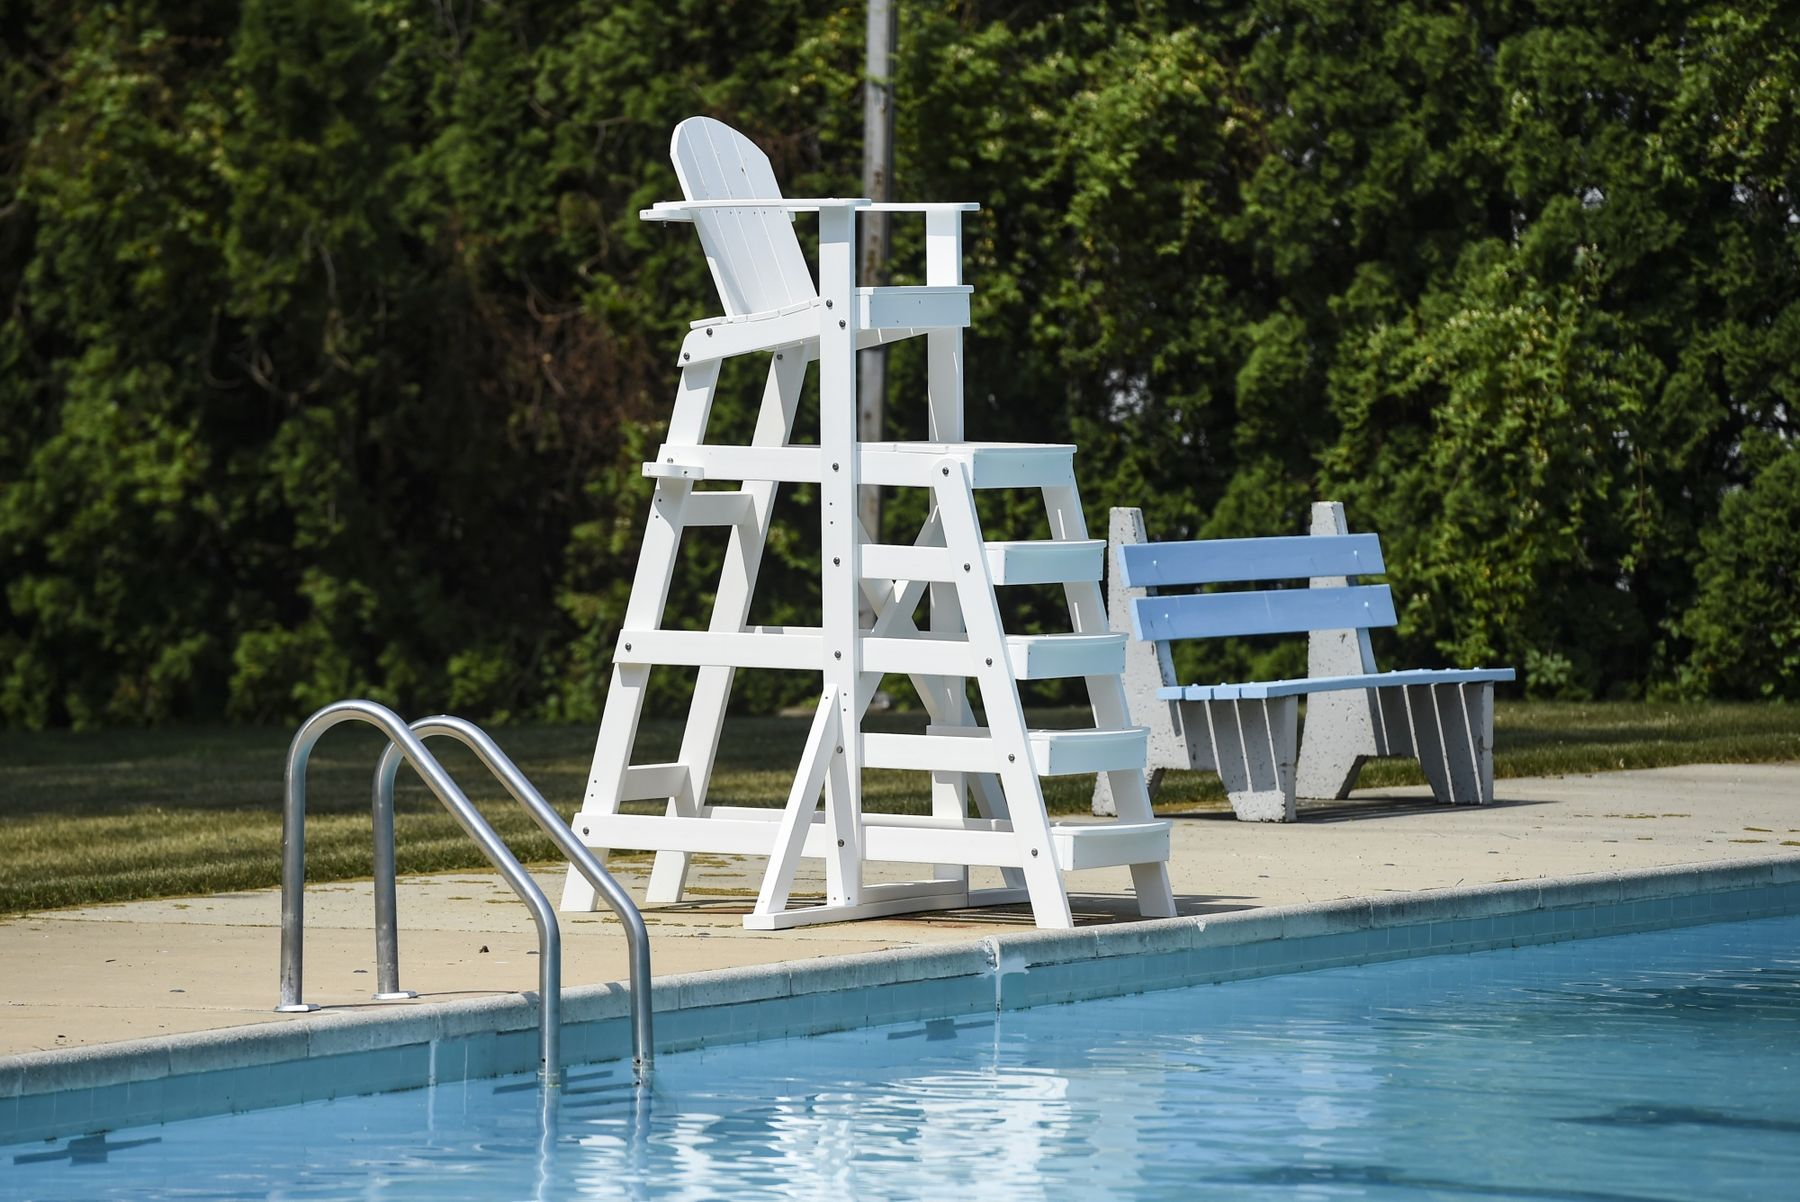 A shortage of lifeguard options and missed opportunities for training during the pandemic means many lifeguard chairs are empty — and pools closed.